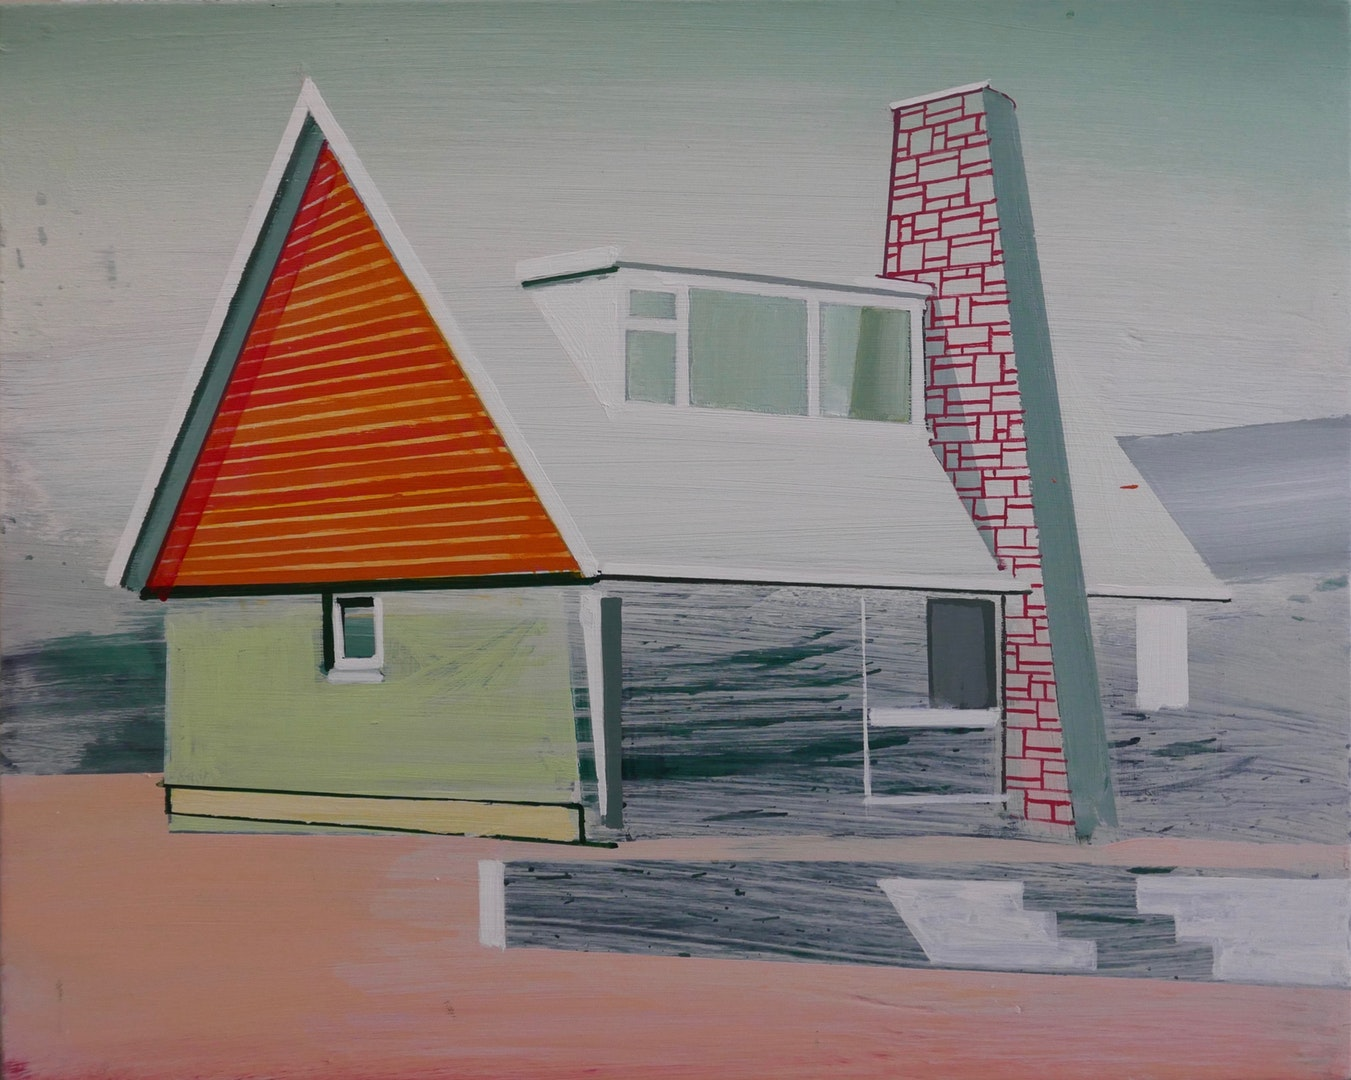 'triangle house', Paul Crook, Acrylic on canvas, 38 x 30 cm